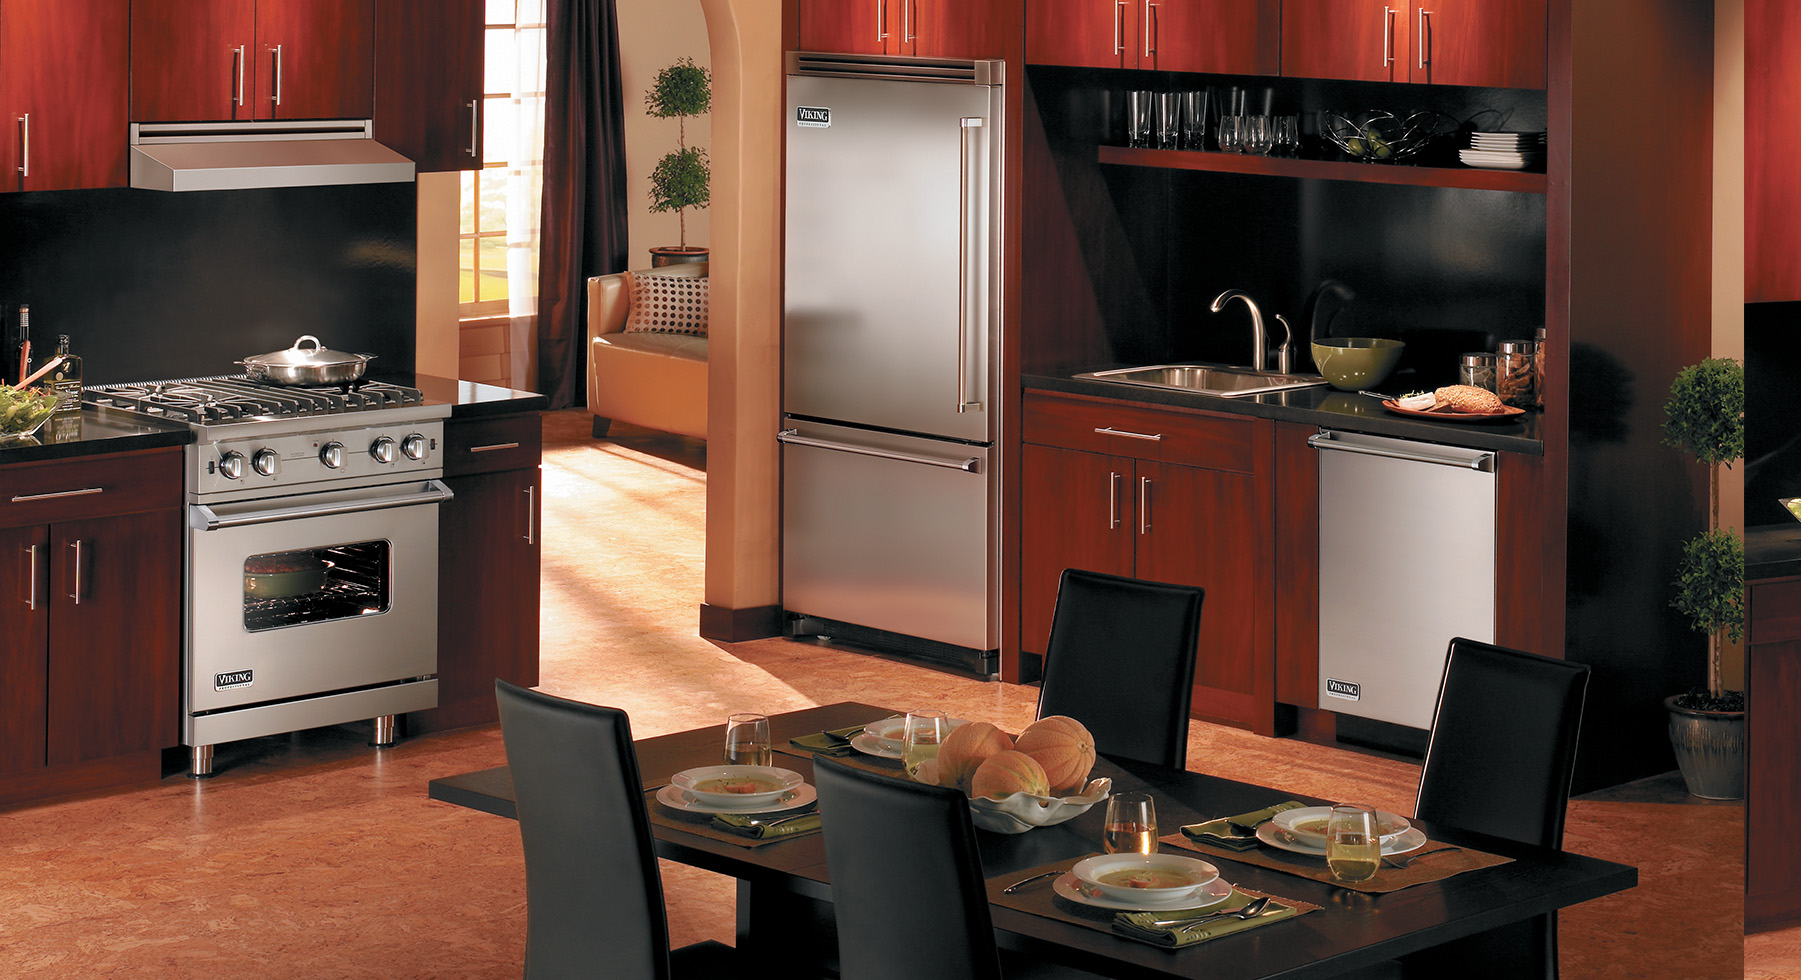 Viking Web 3.0 Appliances, Cabinets, Flooring in Reno, Truckee ...